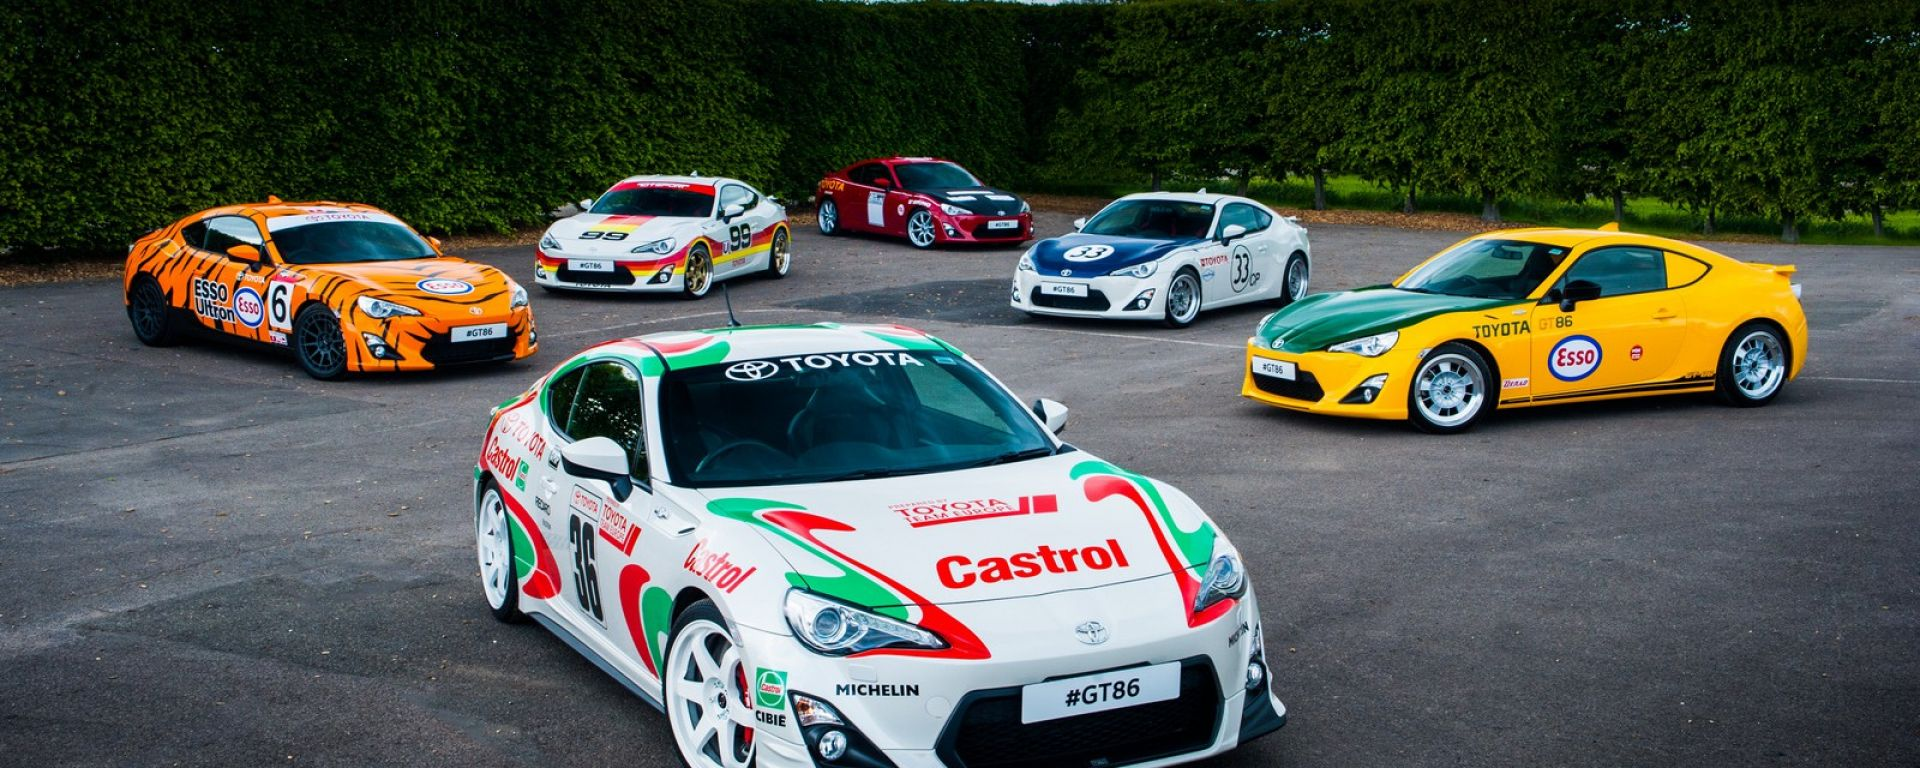 Toyota GT86 Heritage Racing Liveries